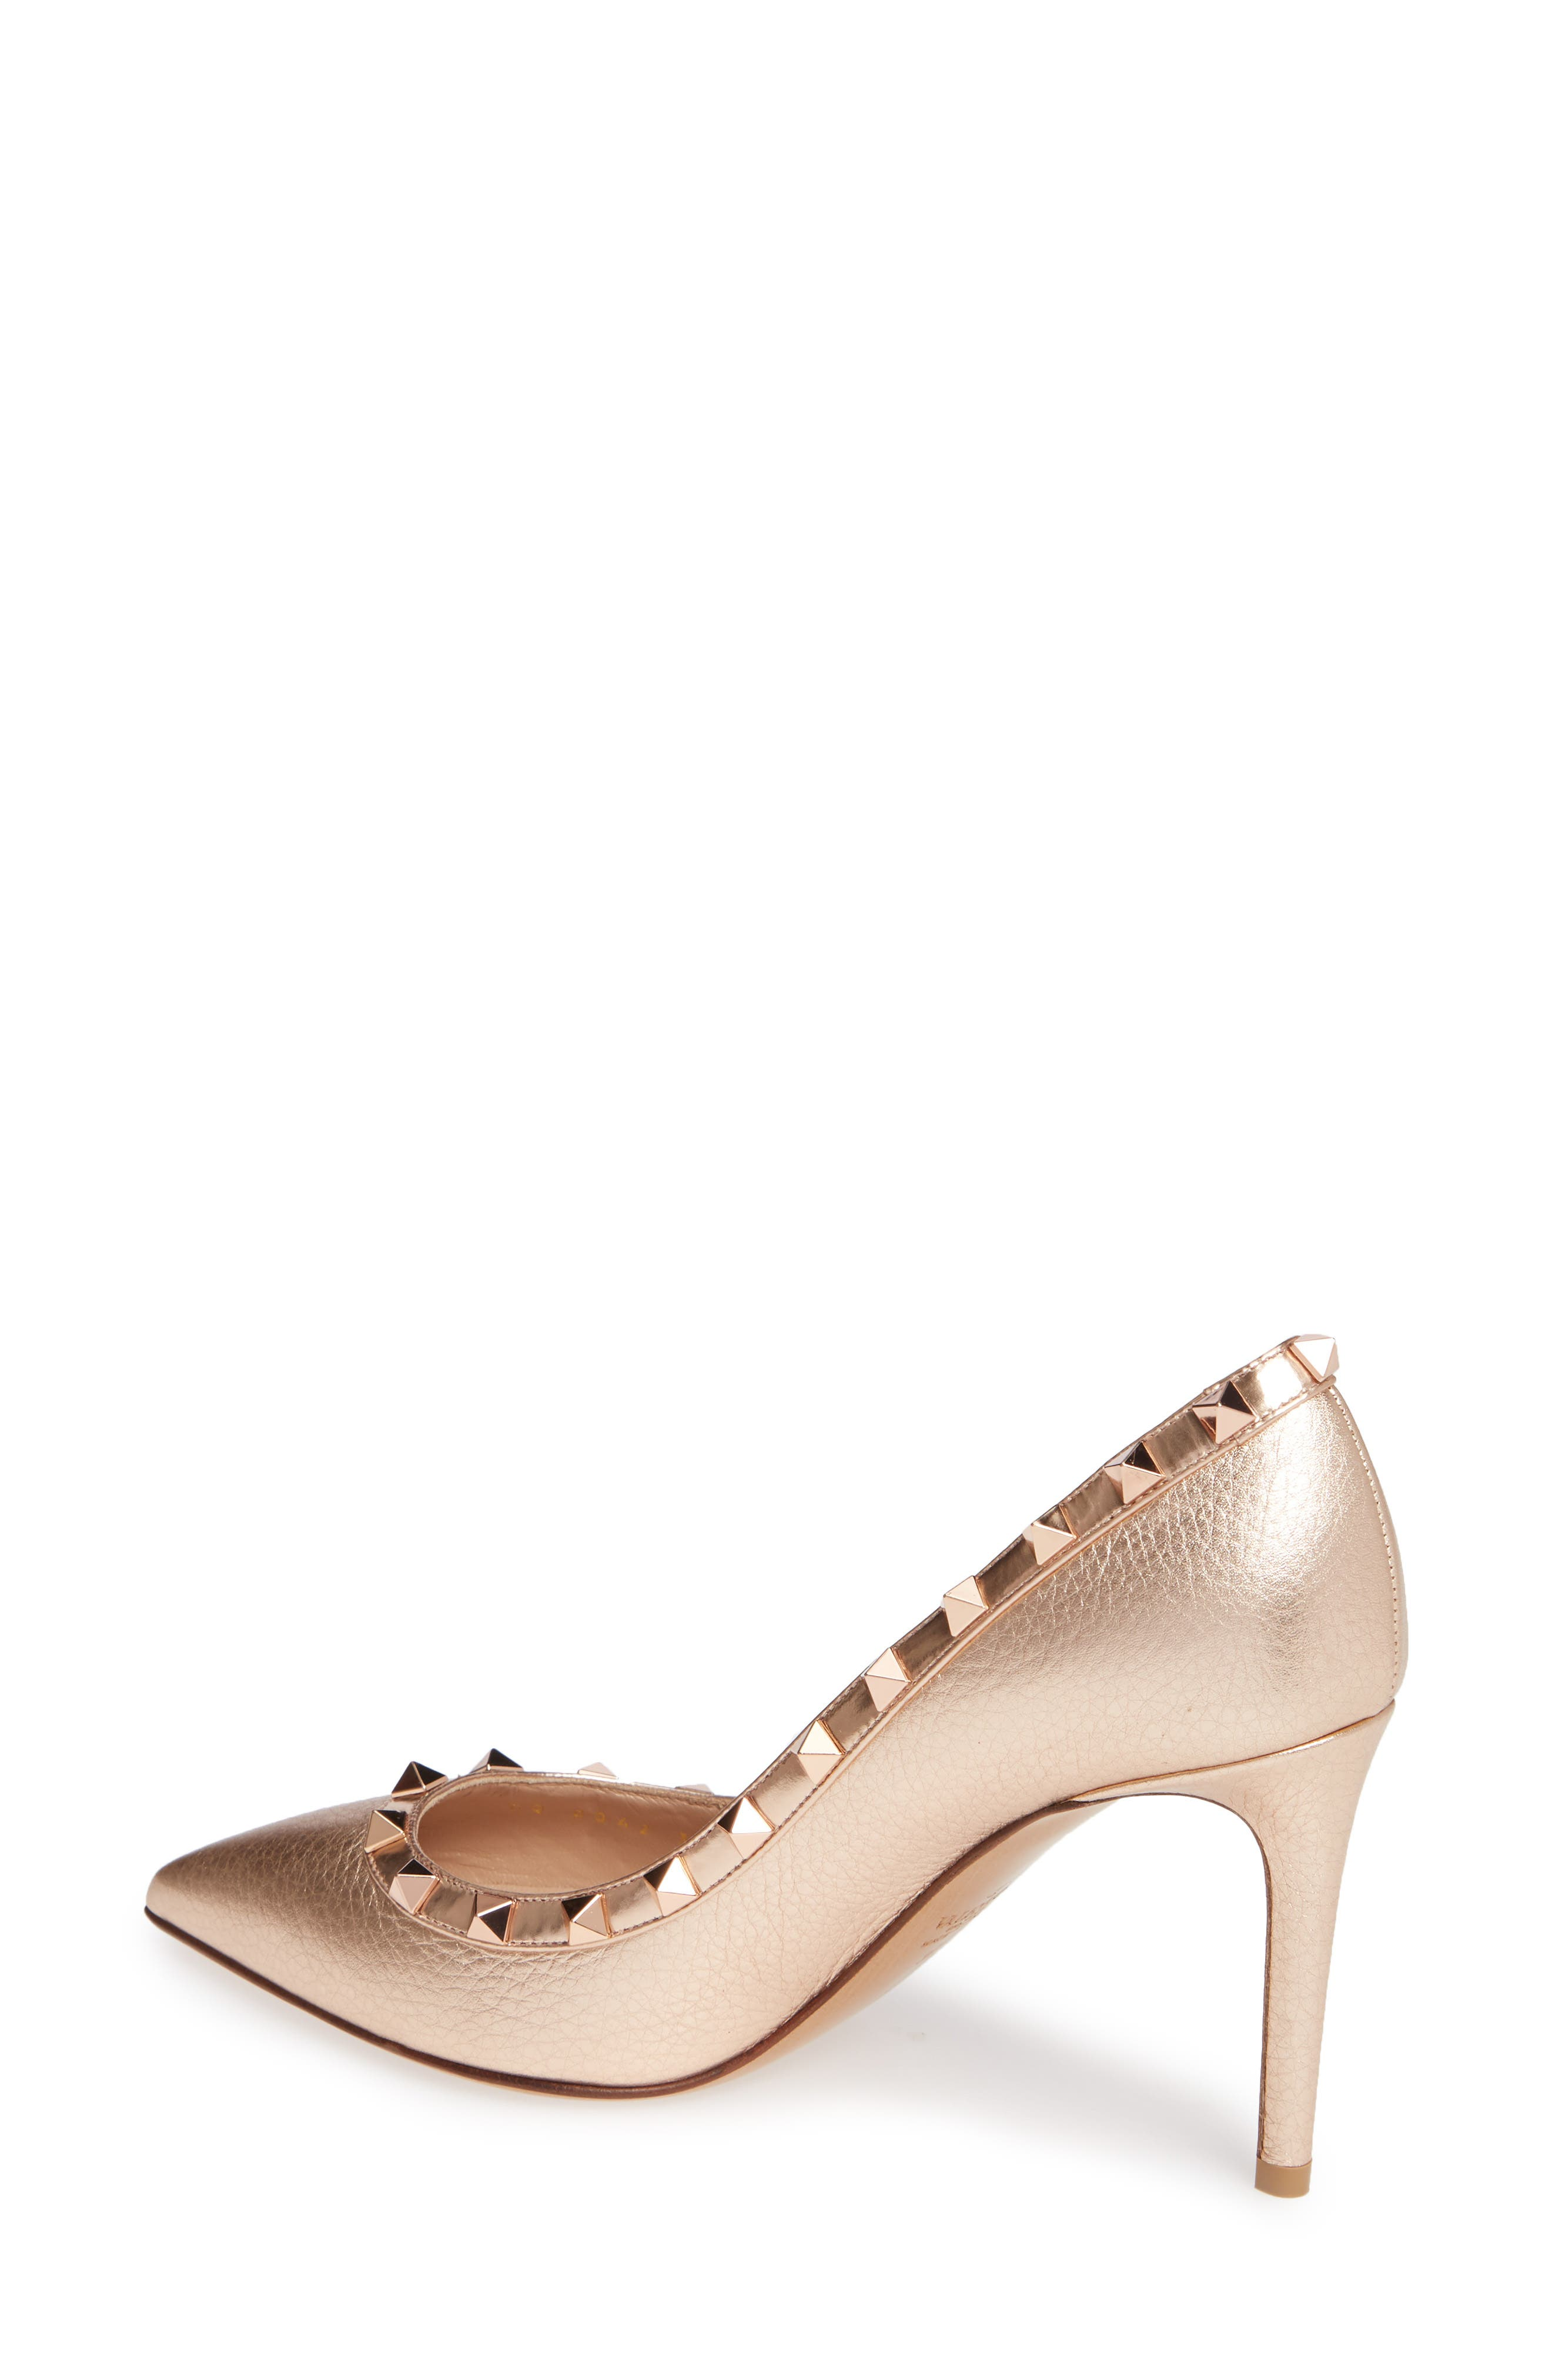 Rockstud Pointy Toe Pump,                             Alternate thumbnail 2, color,                             220